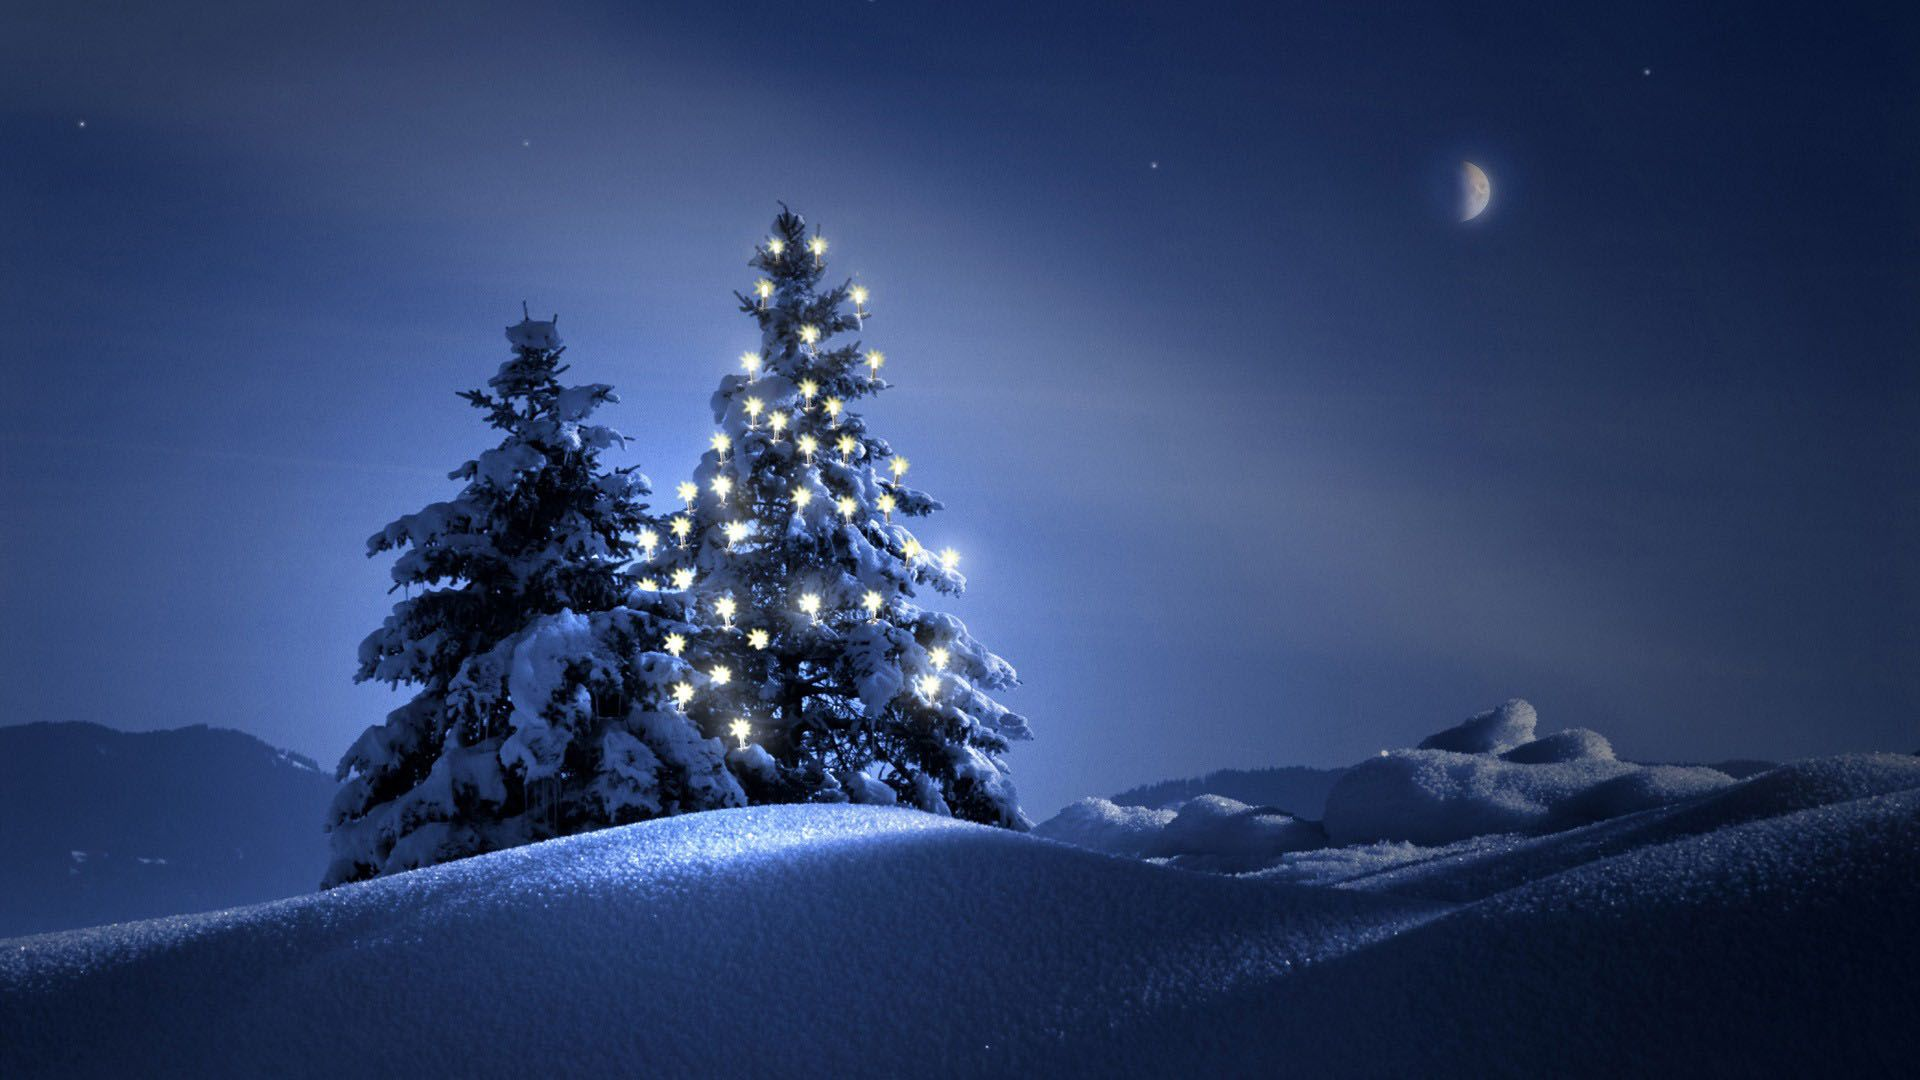 hd christmas tree wallpaper